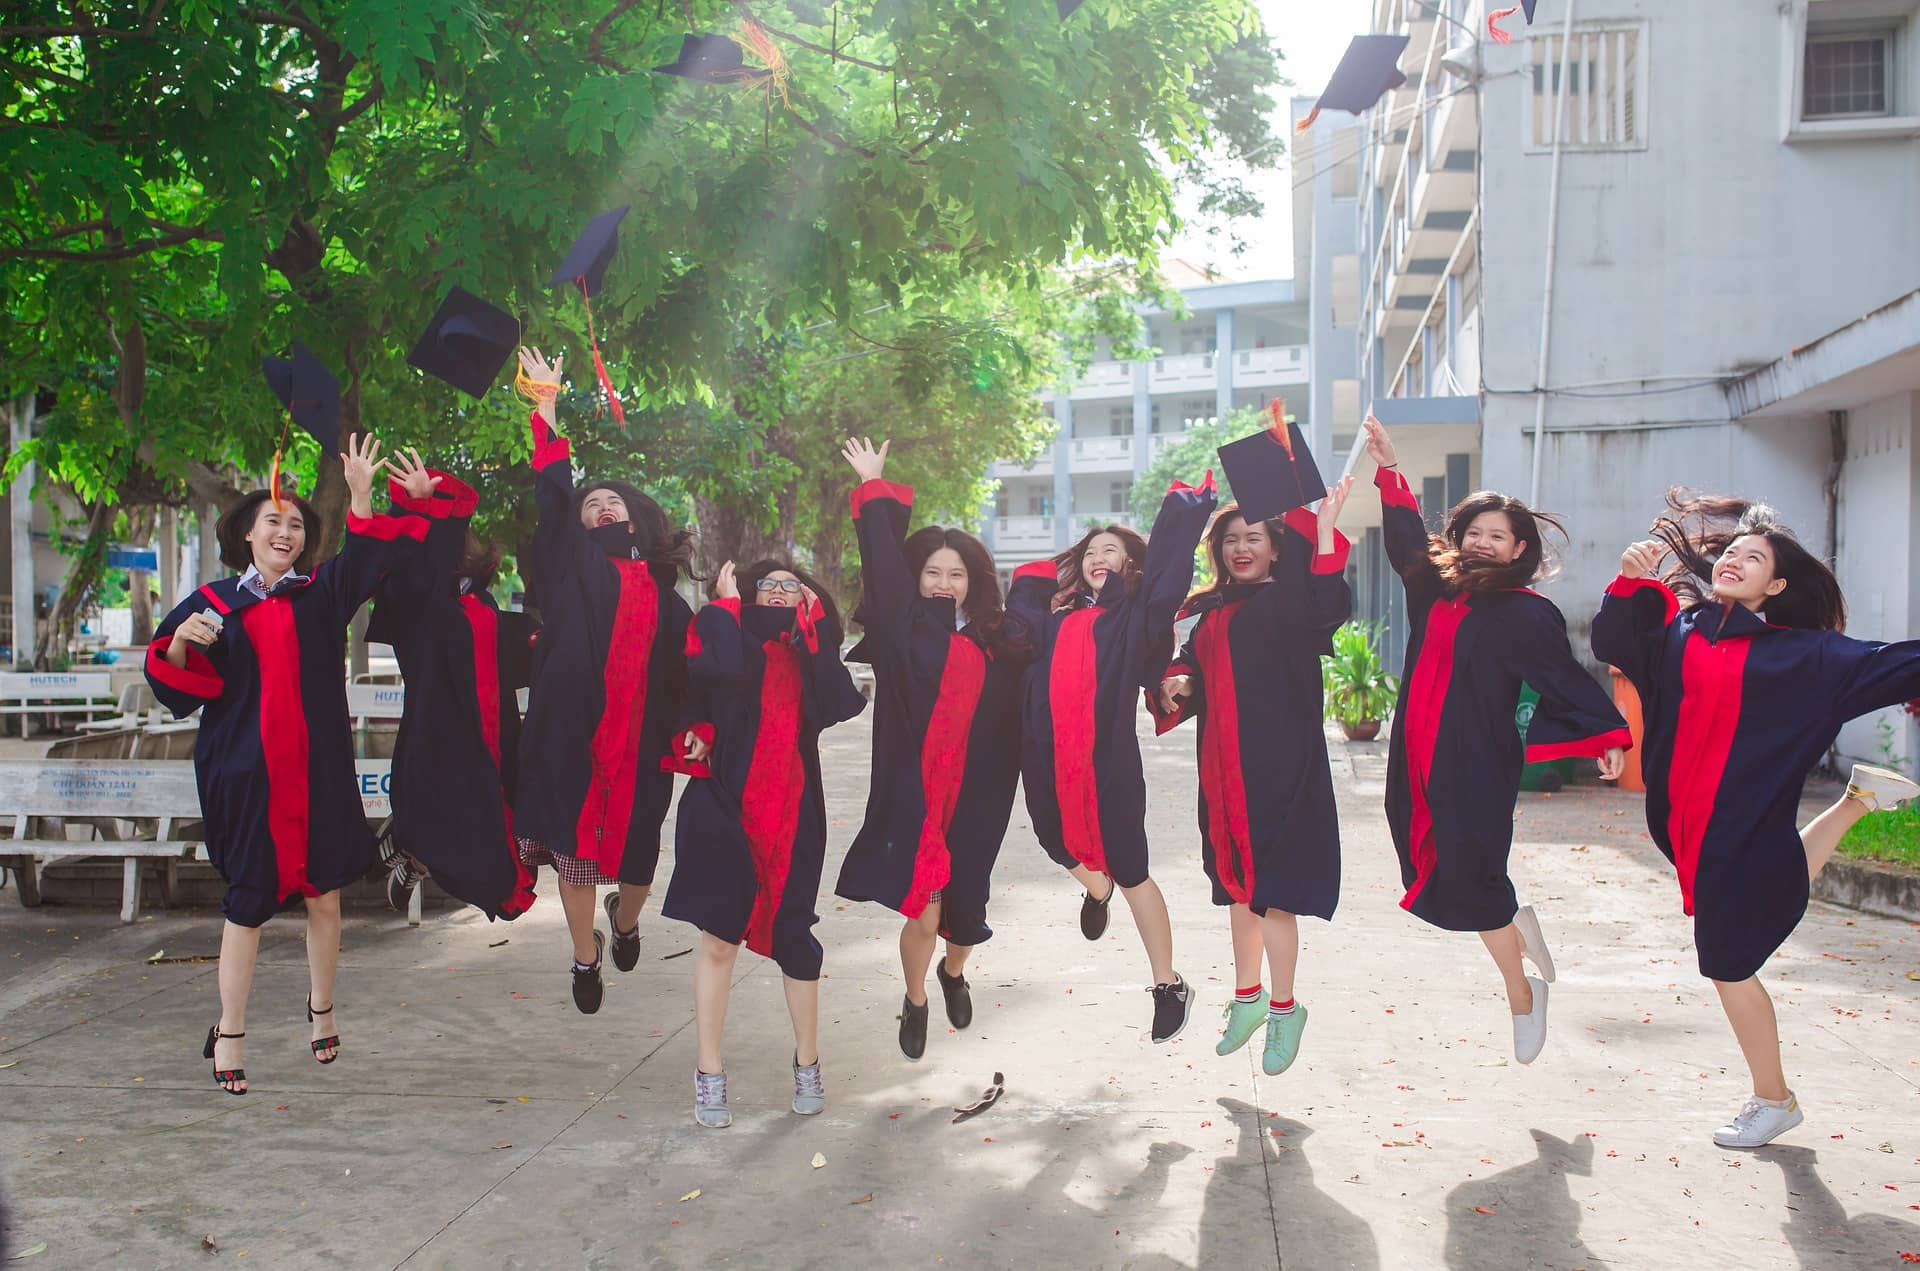 group of female graduates jumping for joy